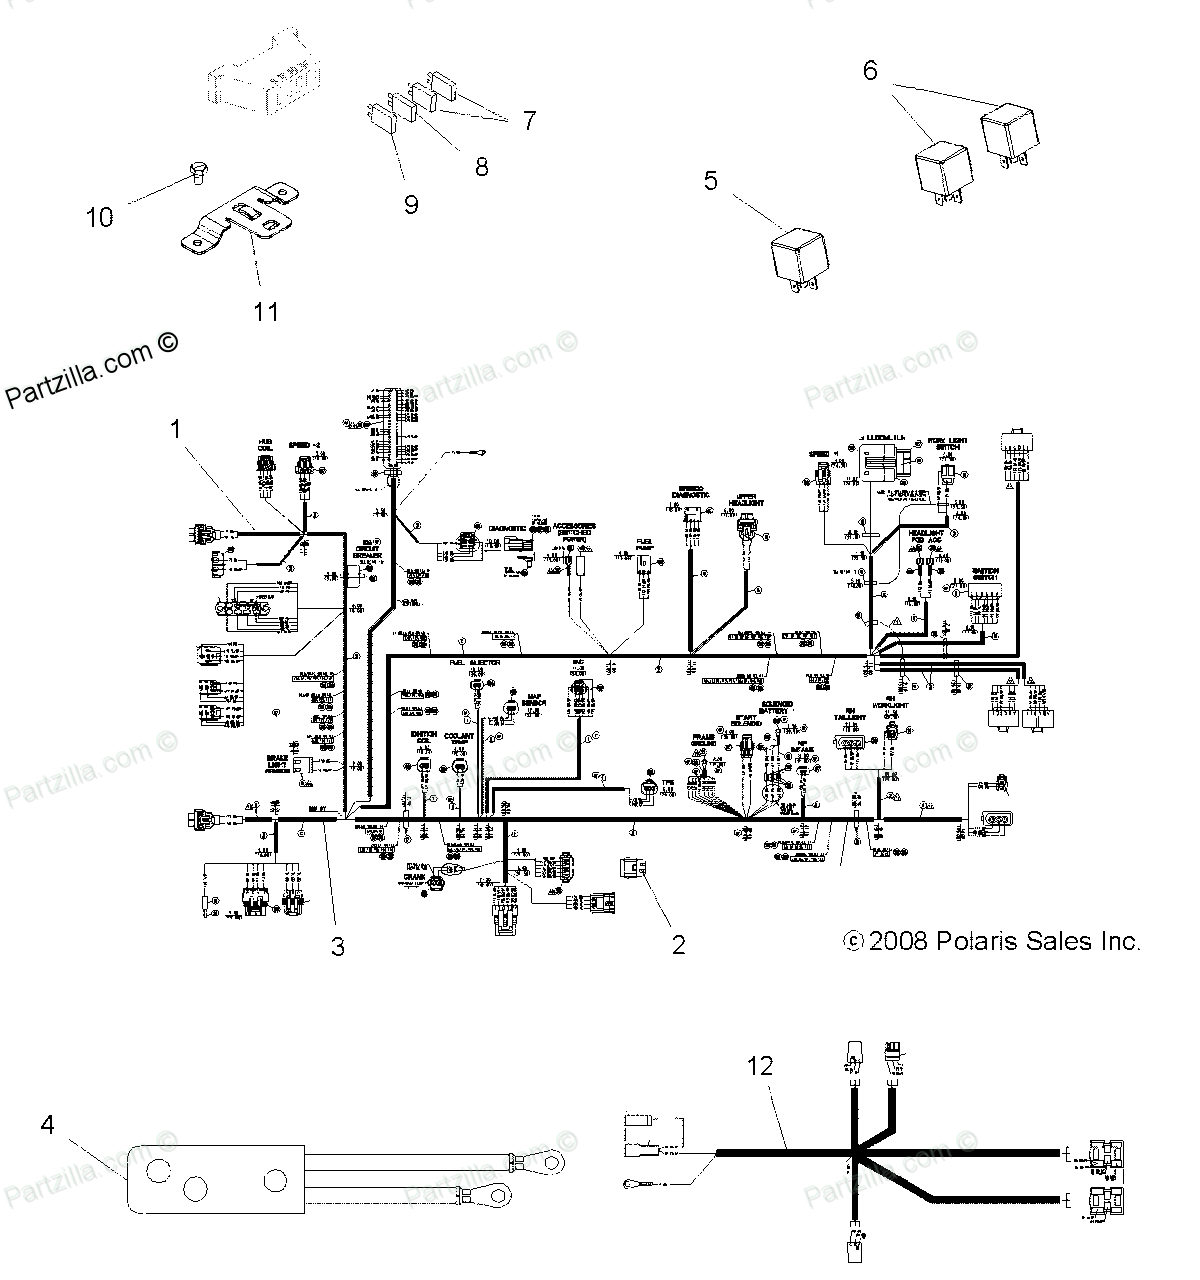 hight resolution of wiring diagram polari 500 ho